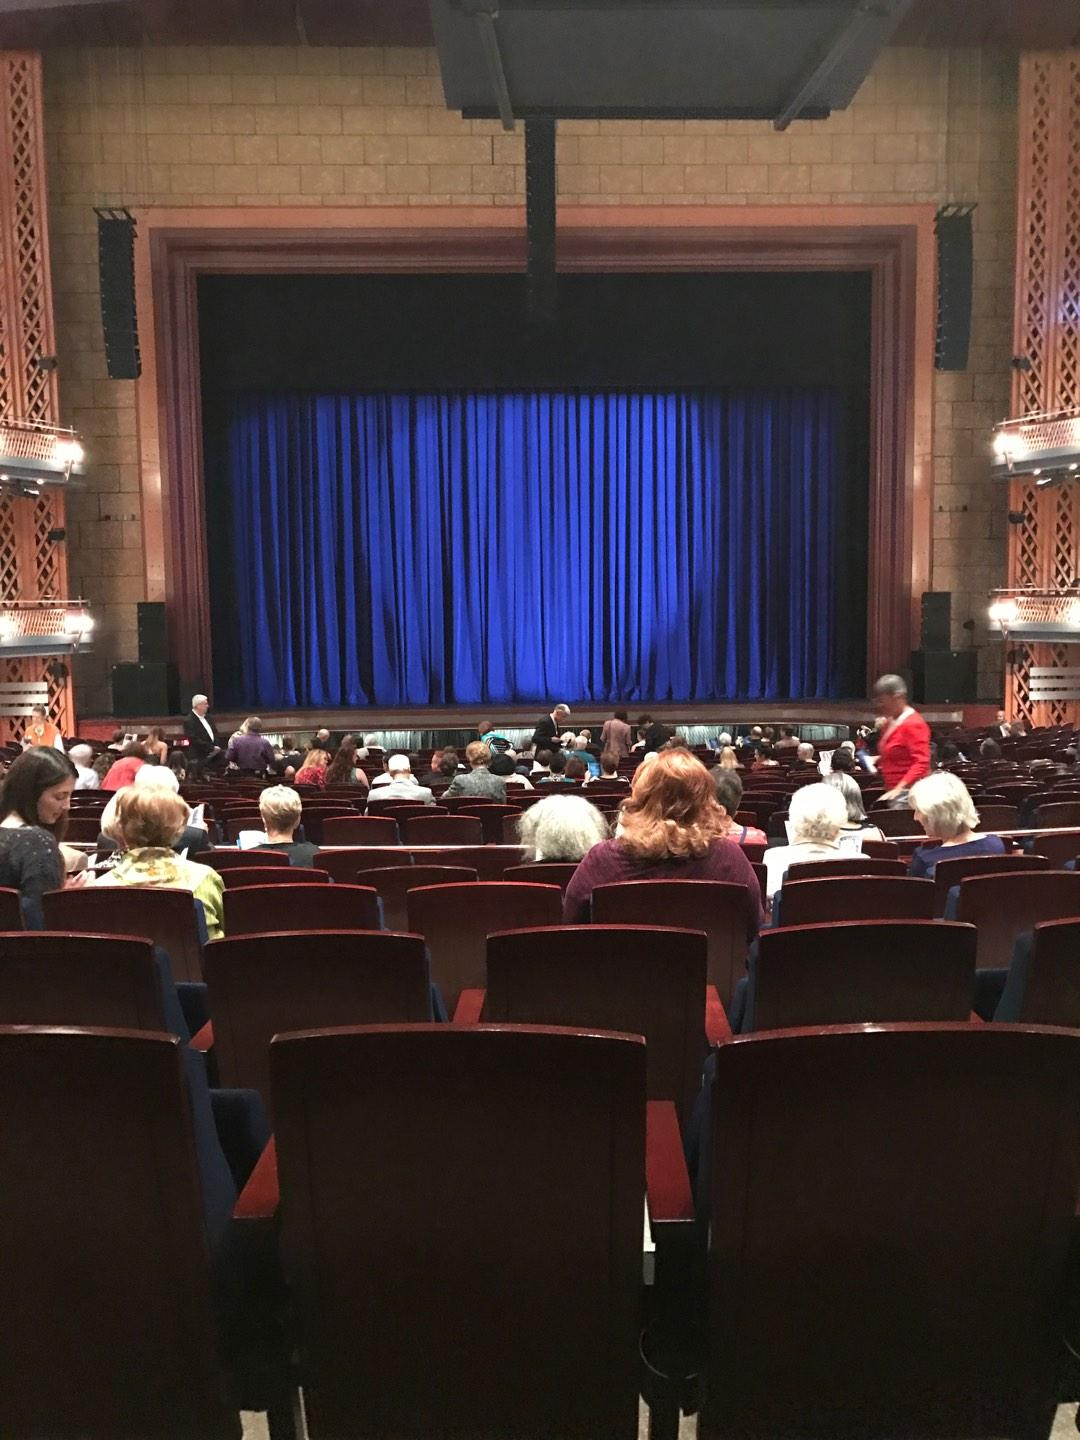 Walt Disney Theatre - Dr. Phillips Center Section Upper Orchestra C Row W Seat 114